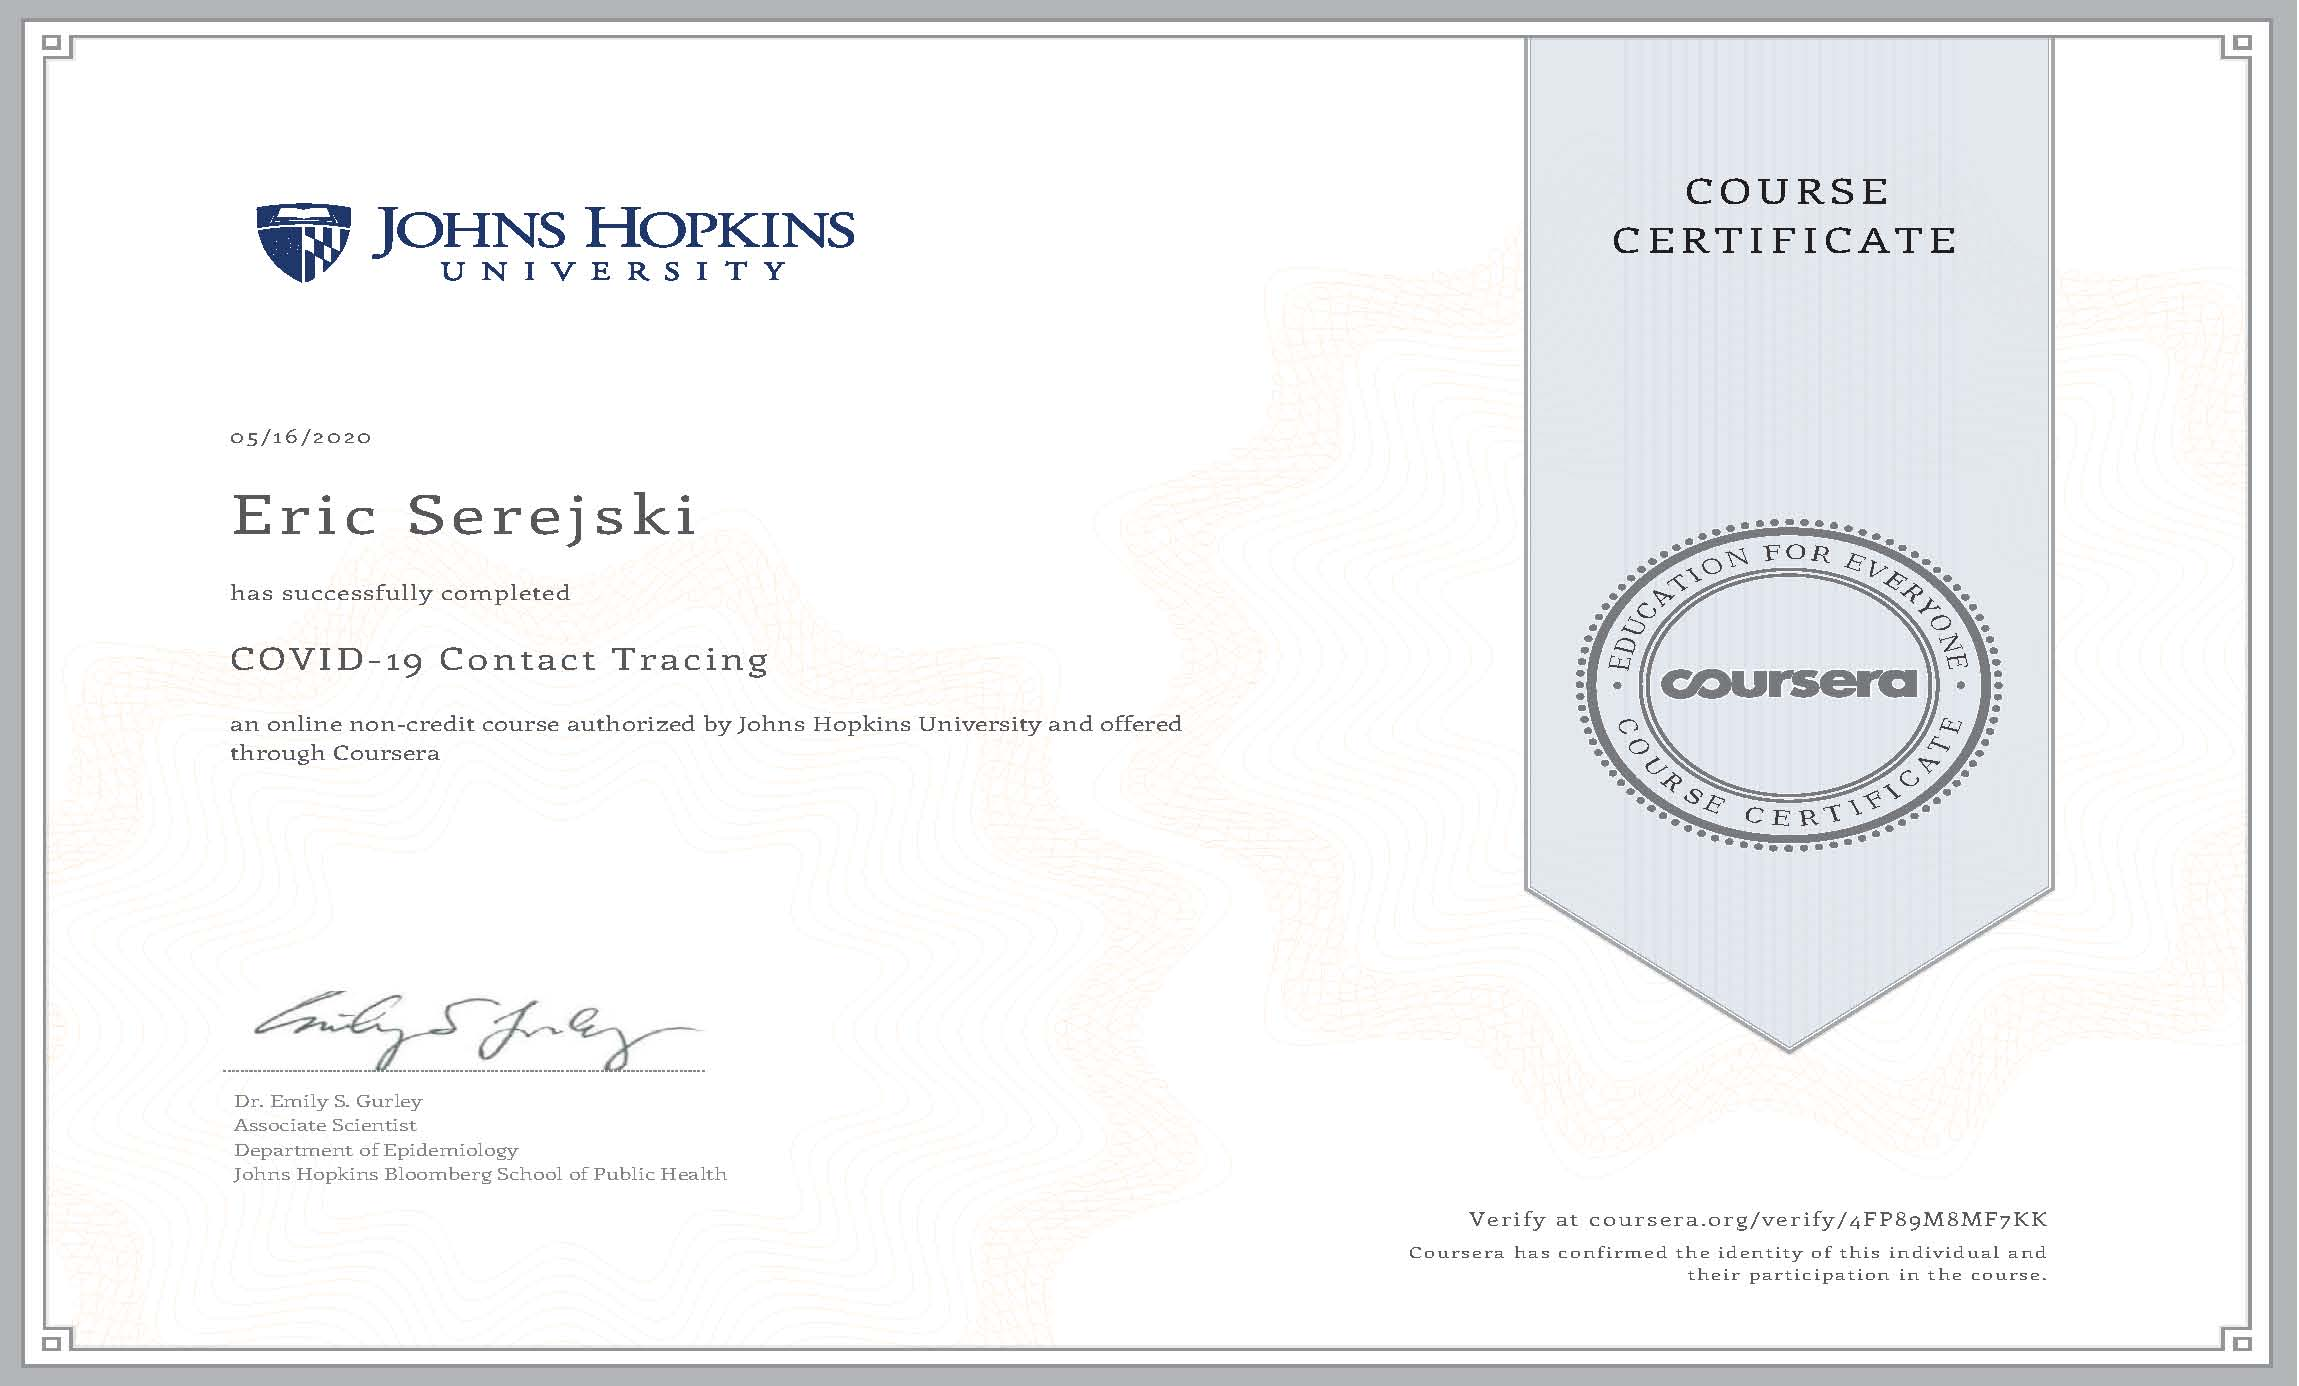 0516 COVID 19 Contact Tracing Certificate